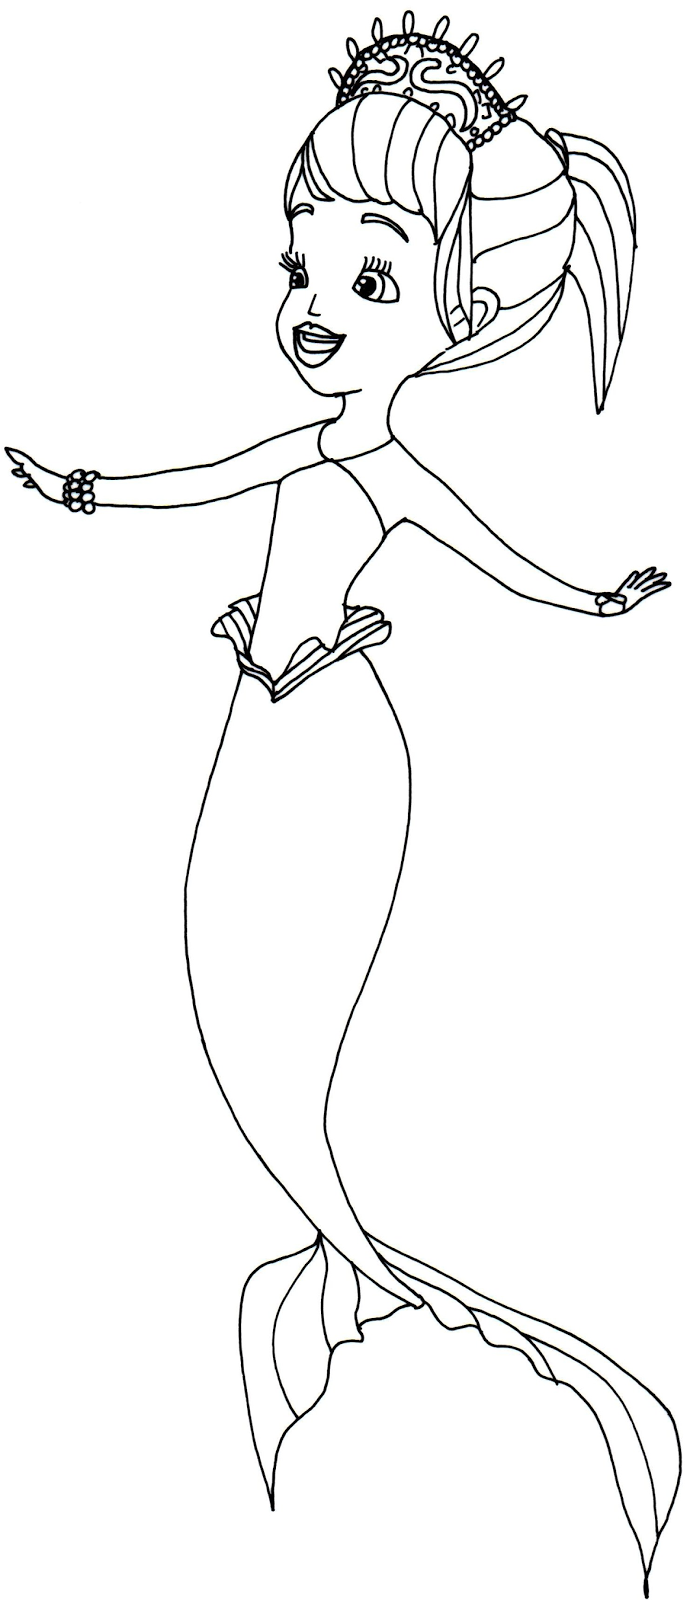 sofia the first coloring pages mermaid - Princess Sofia Coloring Pages